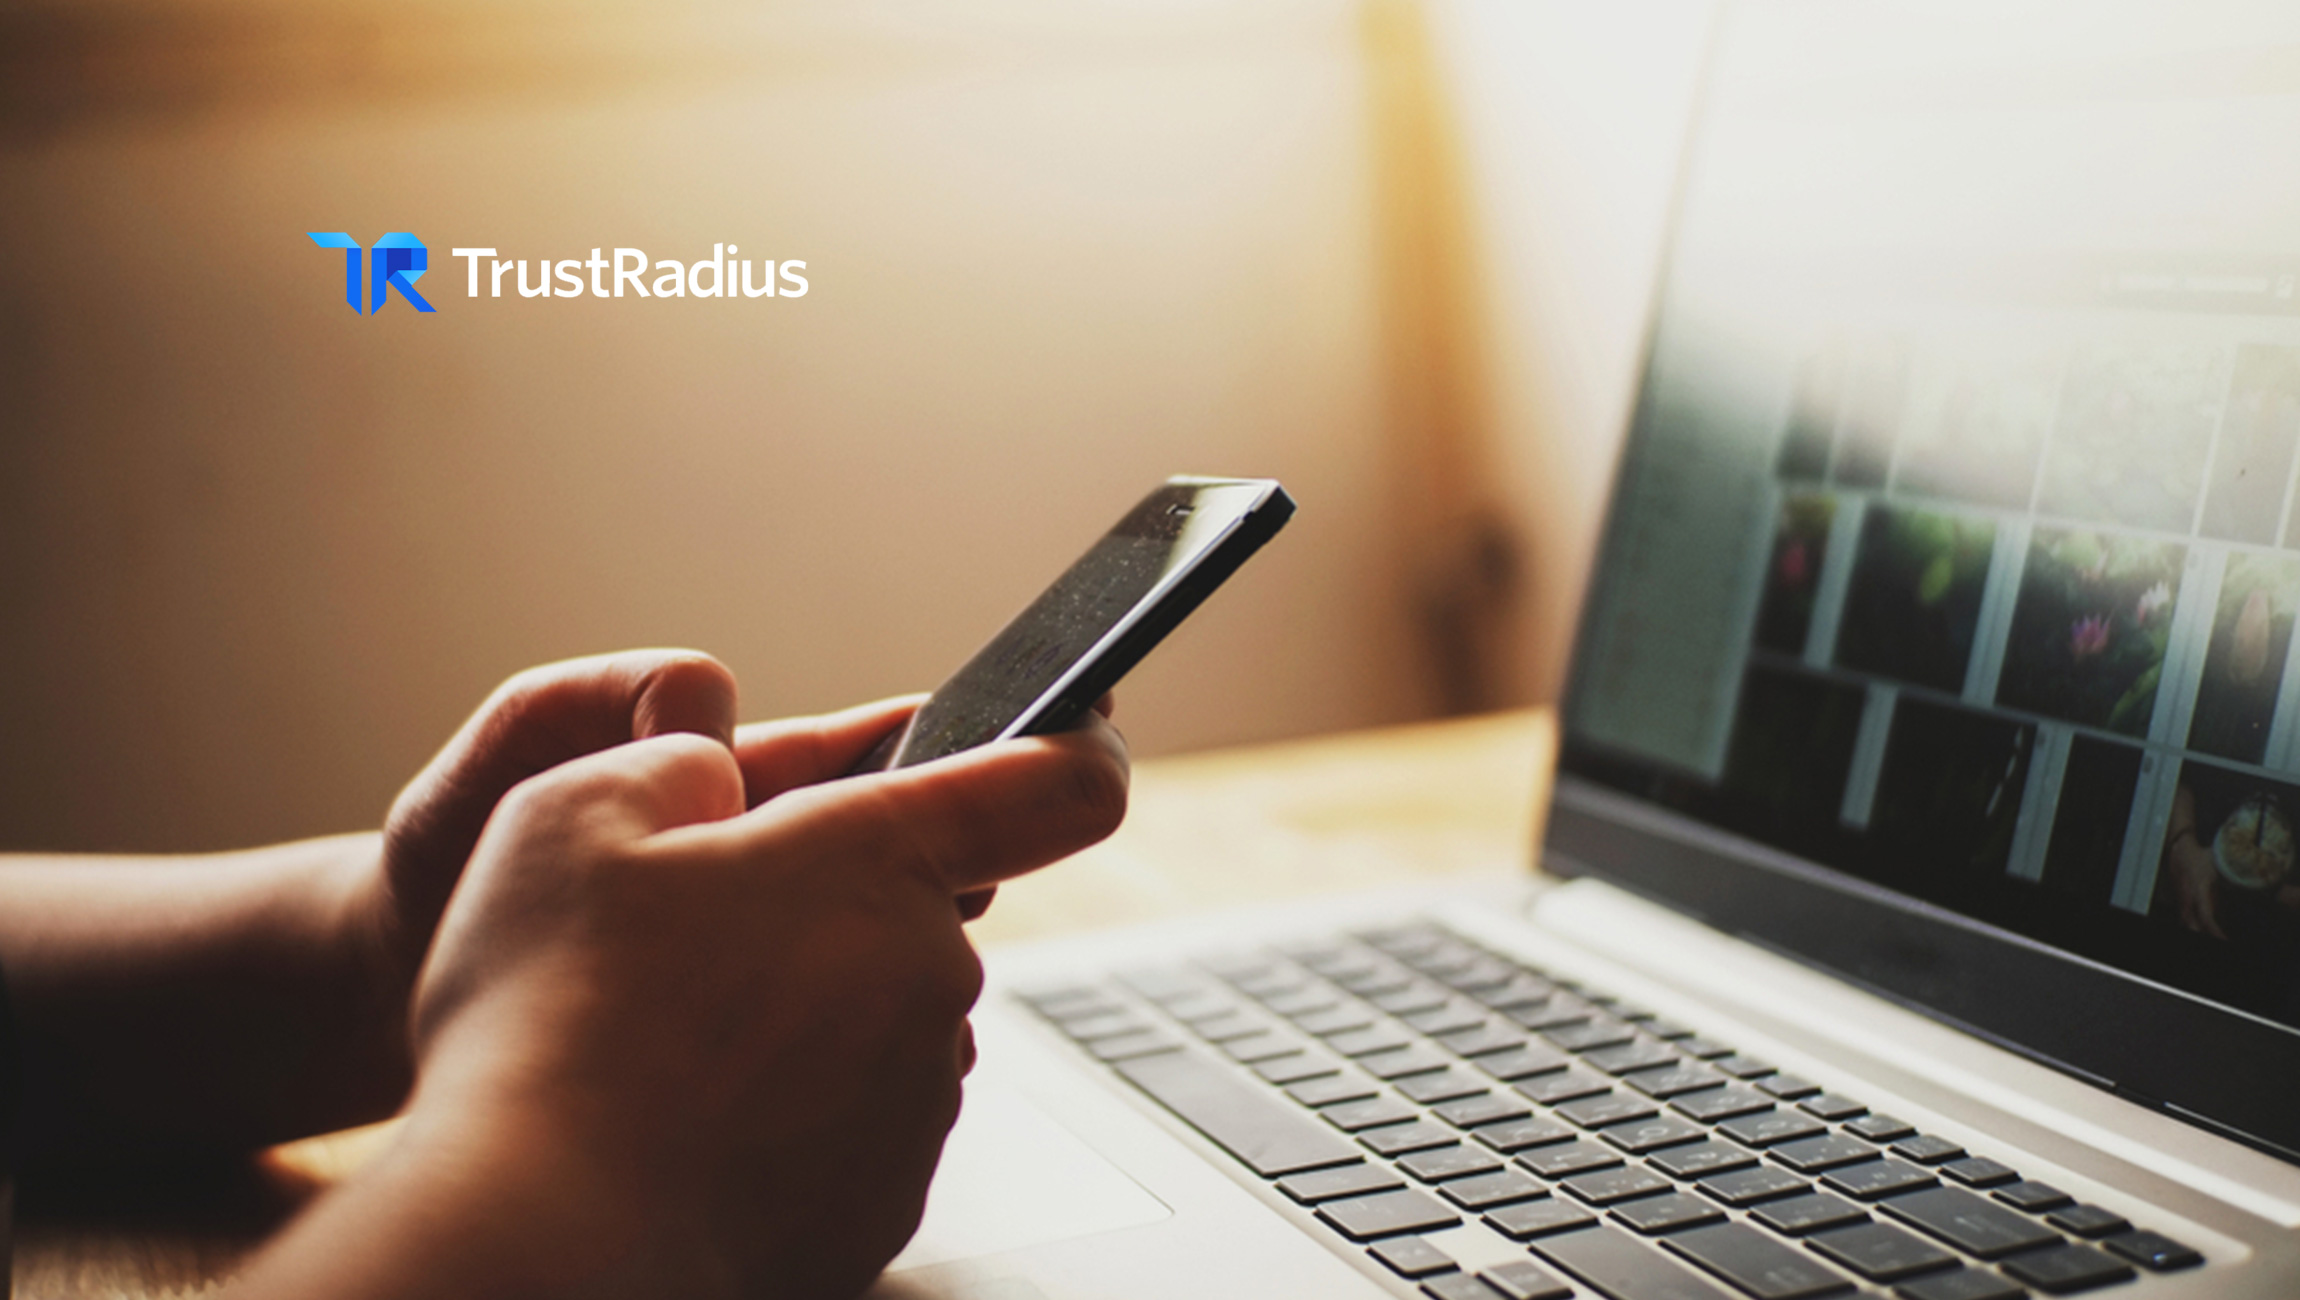 TrustRadius Raises $12.5 Million to Revolutionize Software Reviews for Enterprise